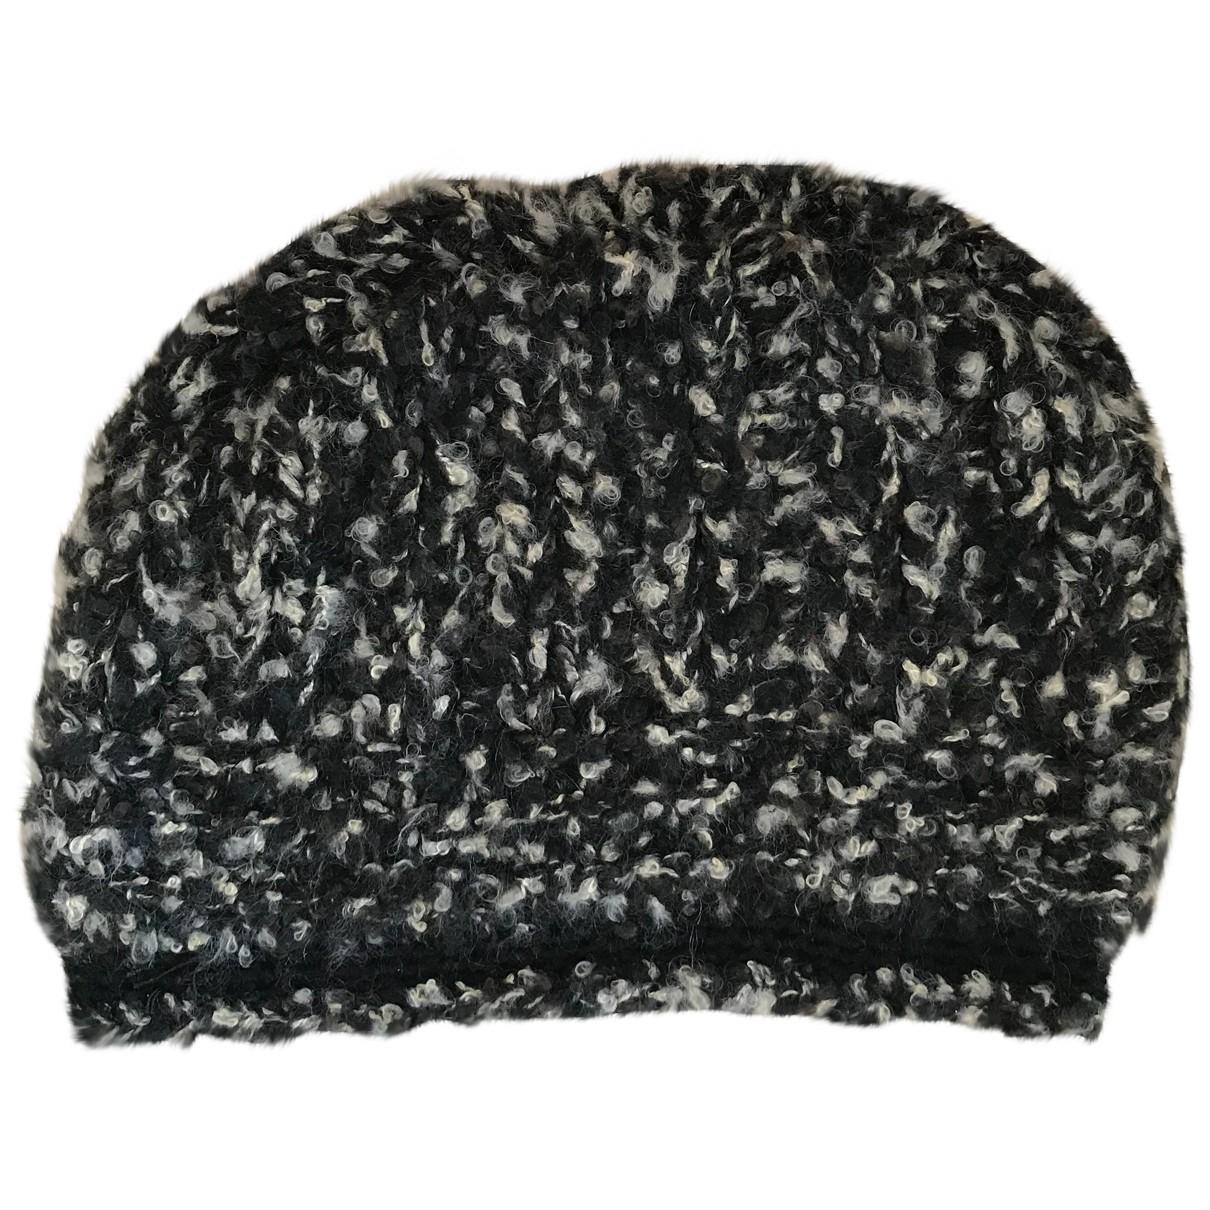 a2697ae8118e1 Chanel. Women s Pre-owned Black Cashmere Hats. £341 £316 From Vestiaire  Collective